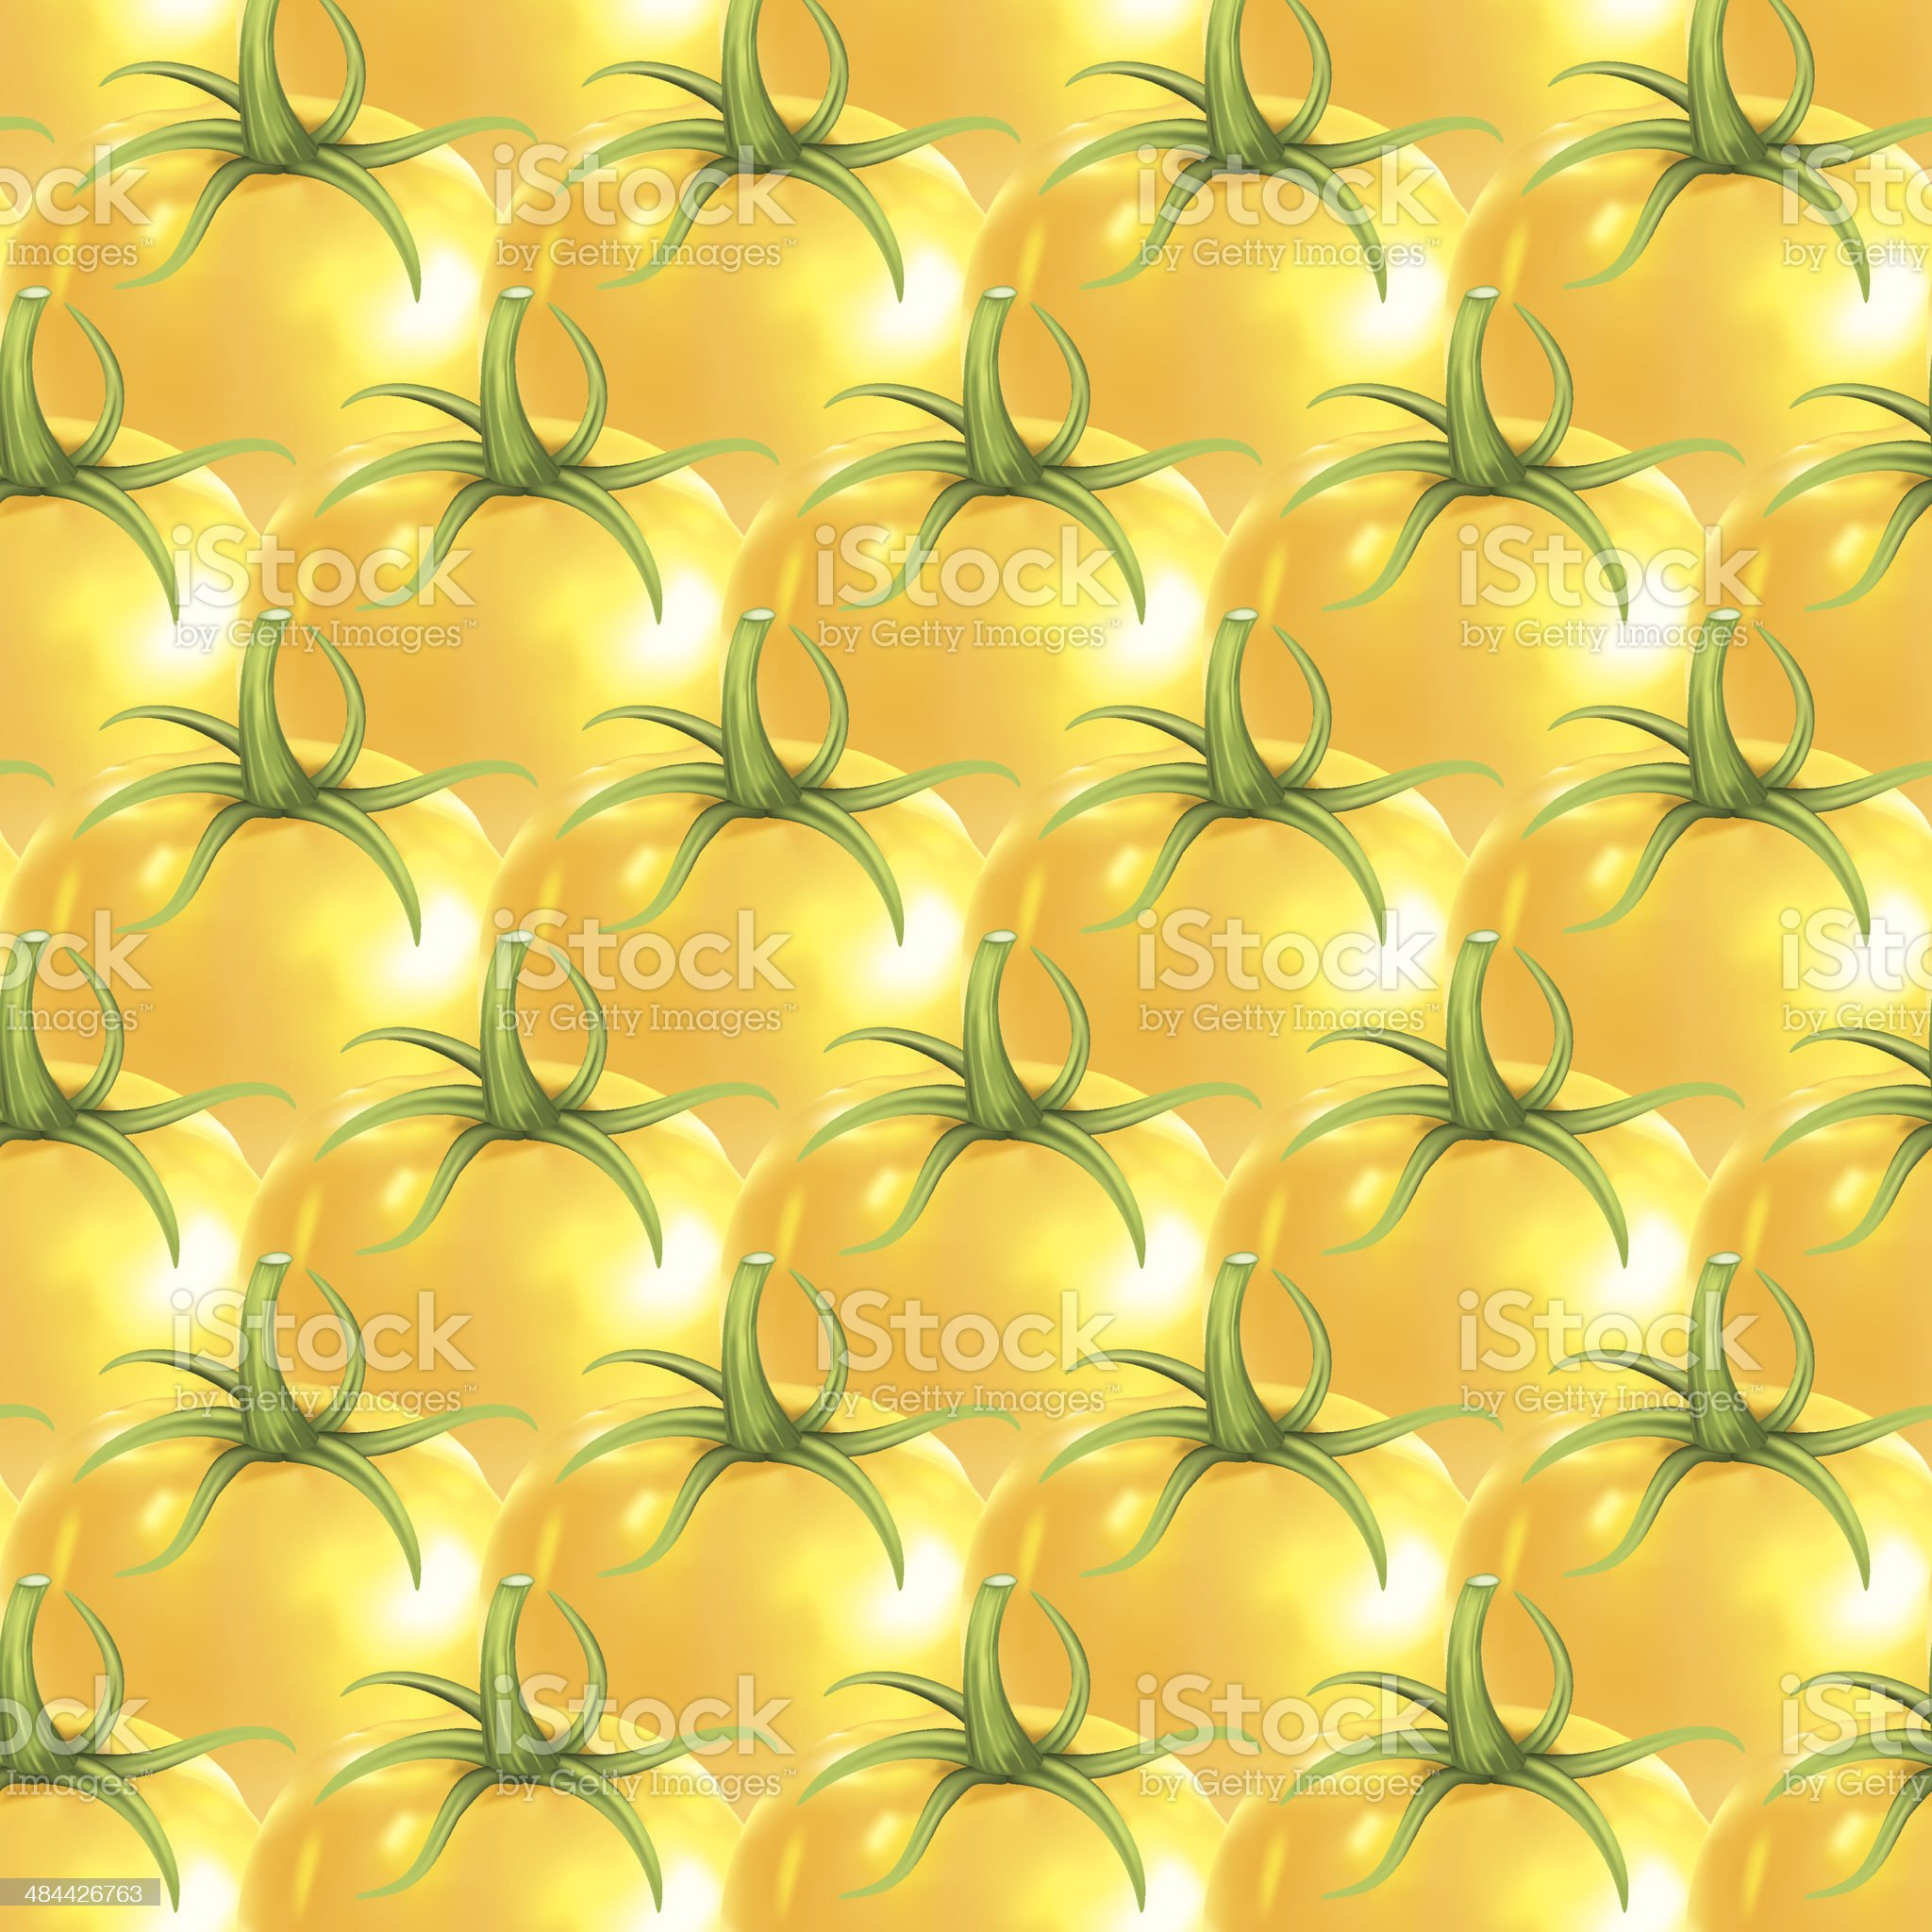 Yellow Heirloom Tomatoes Seamless Pattern royalty-free stock vector art